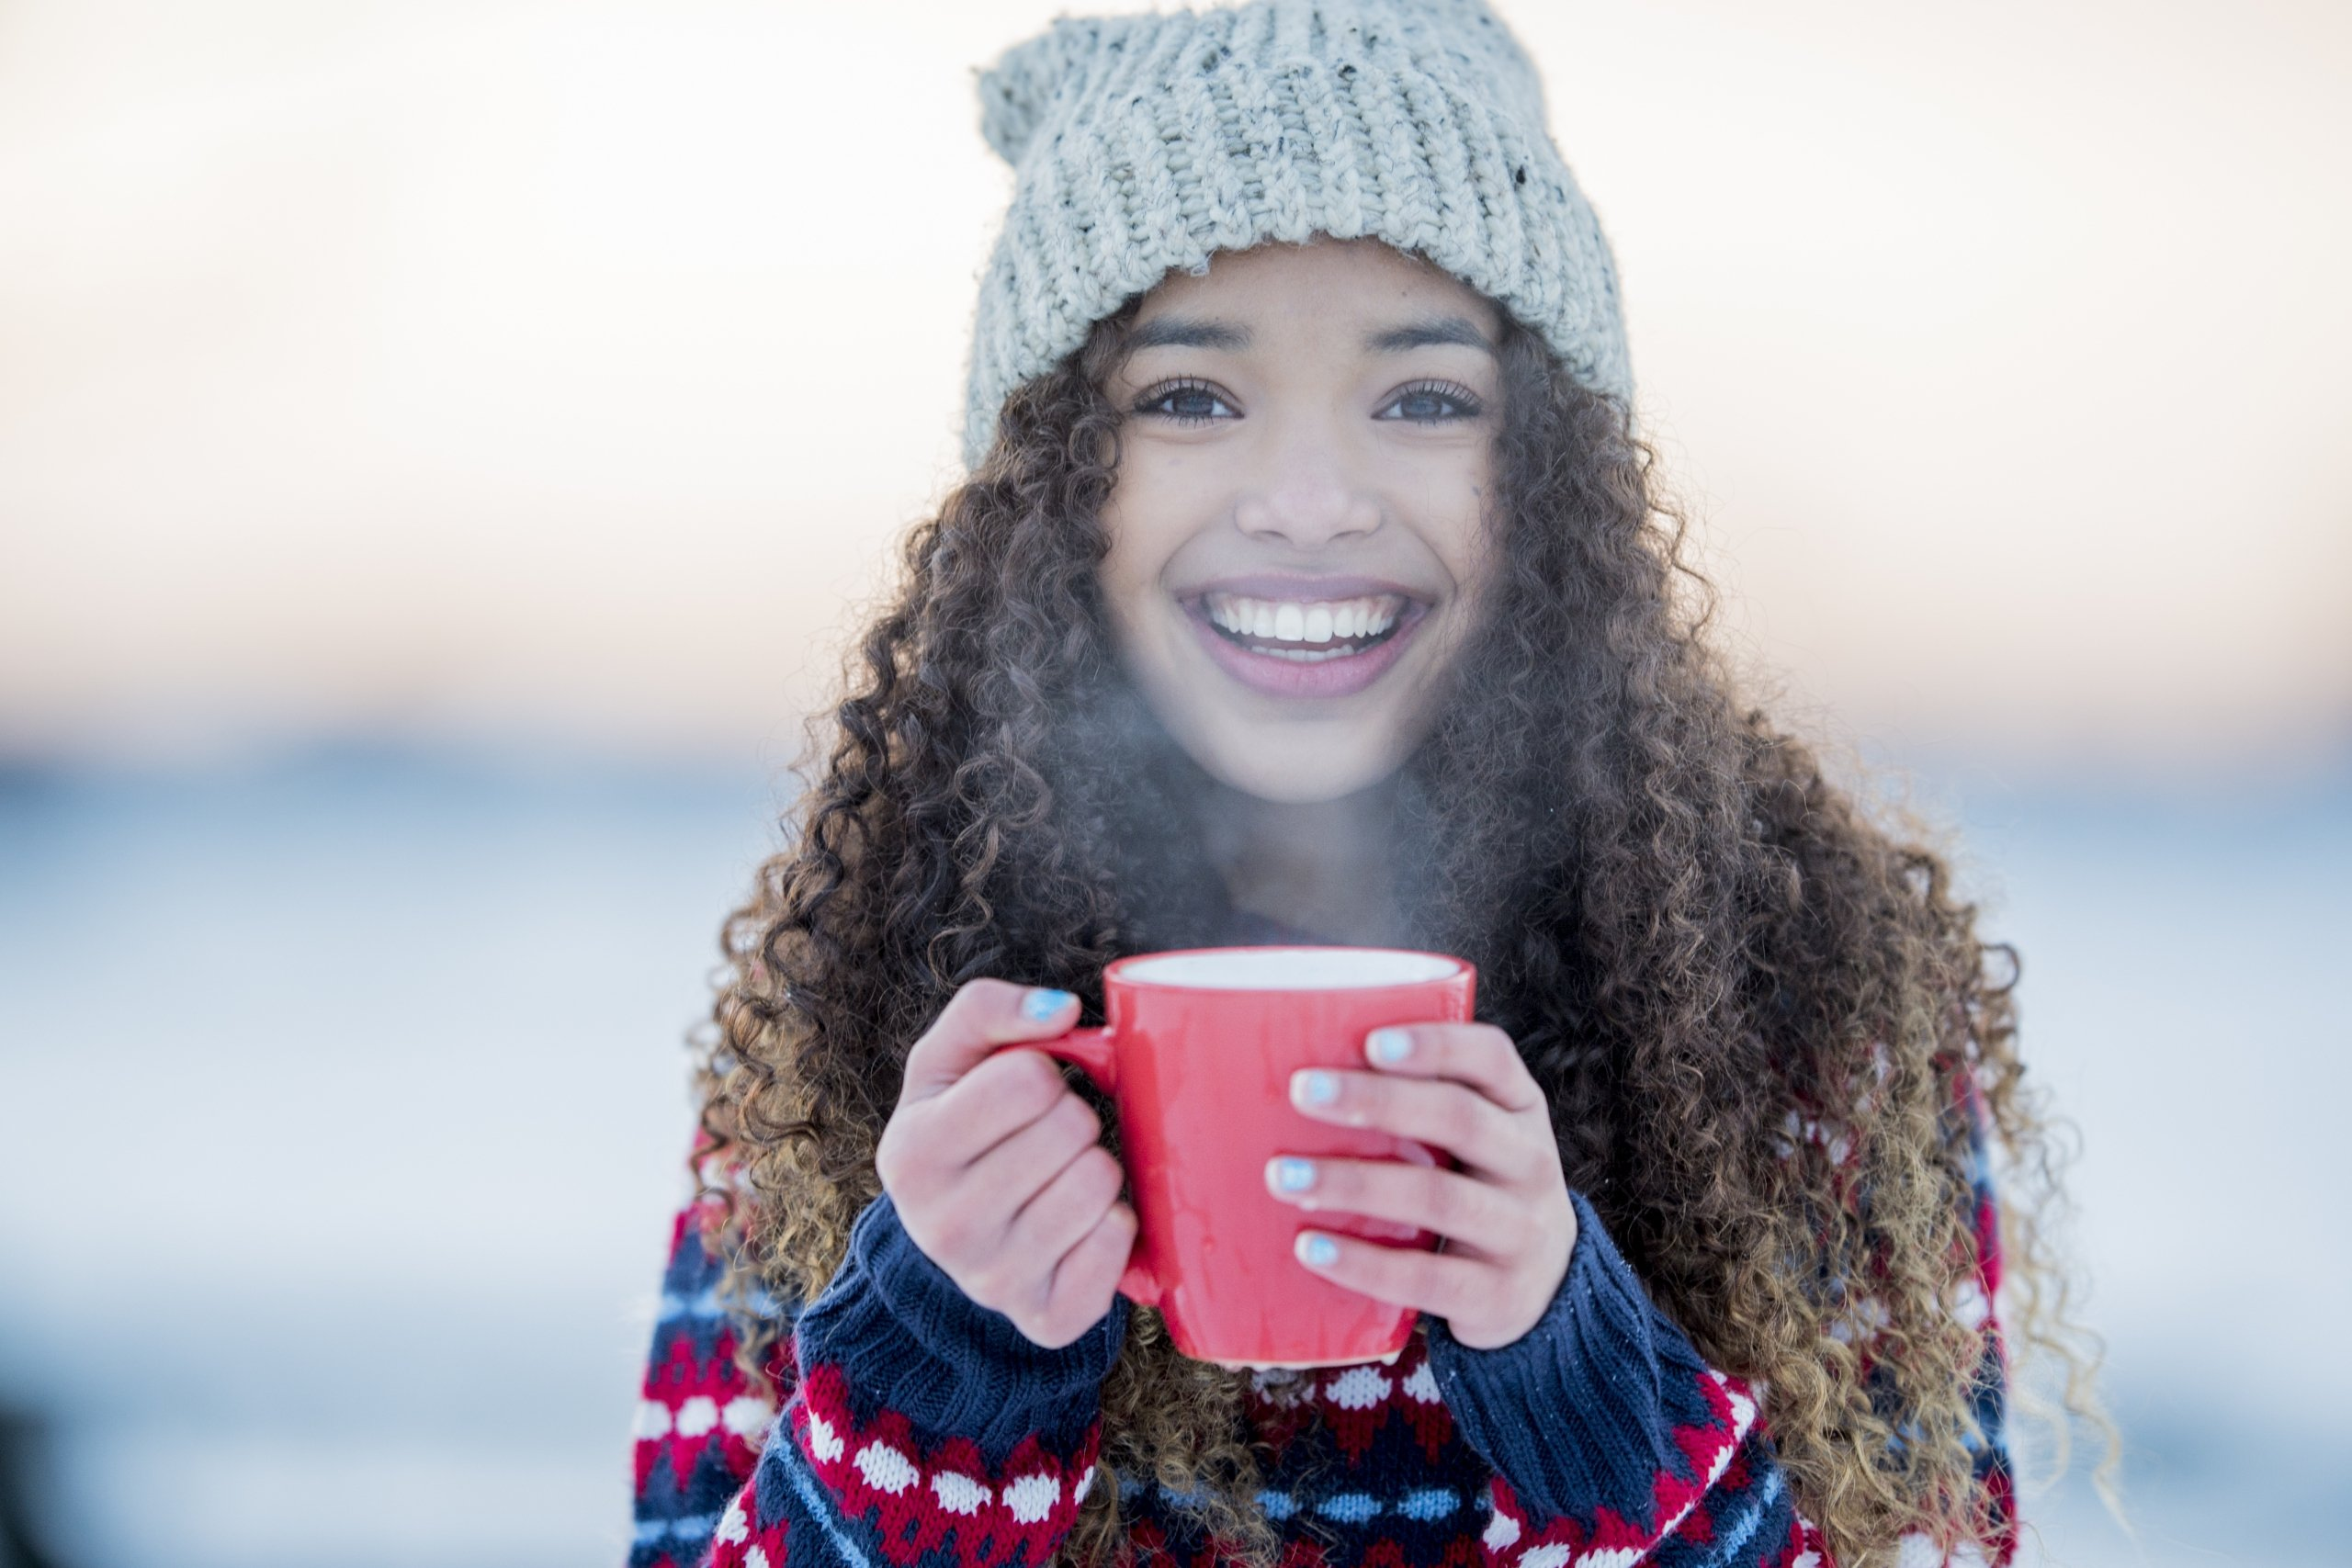 Woman smiling during the winter